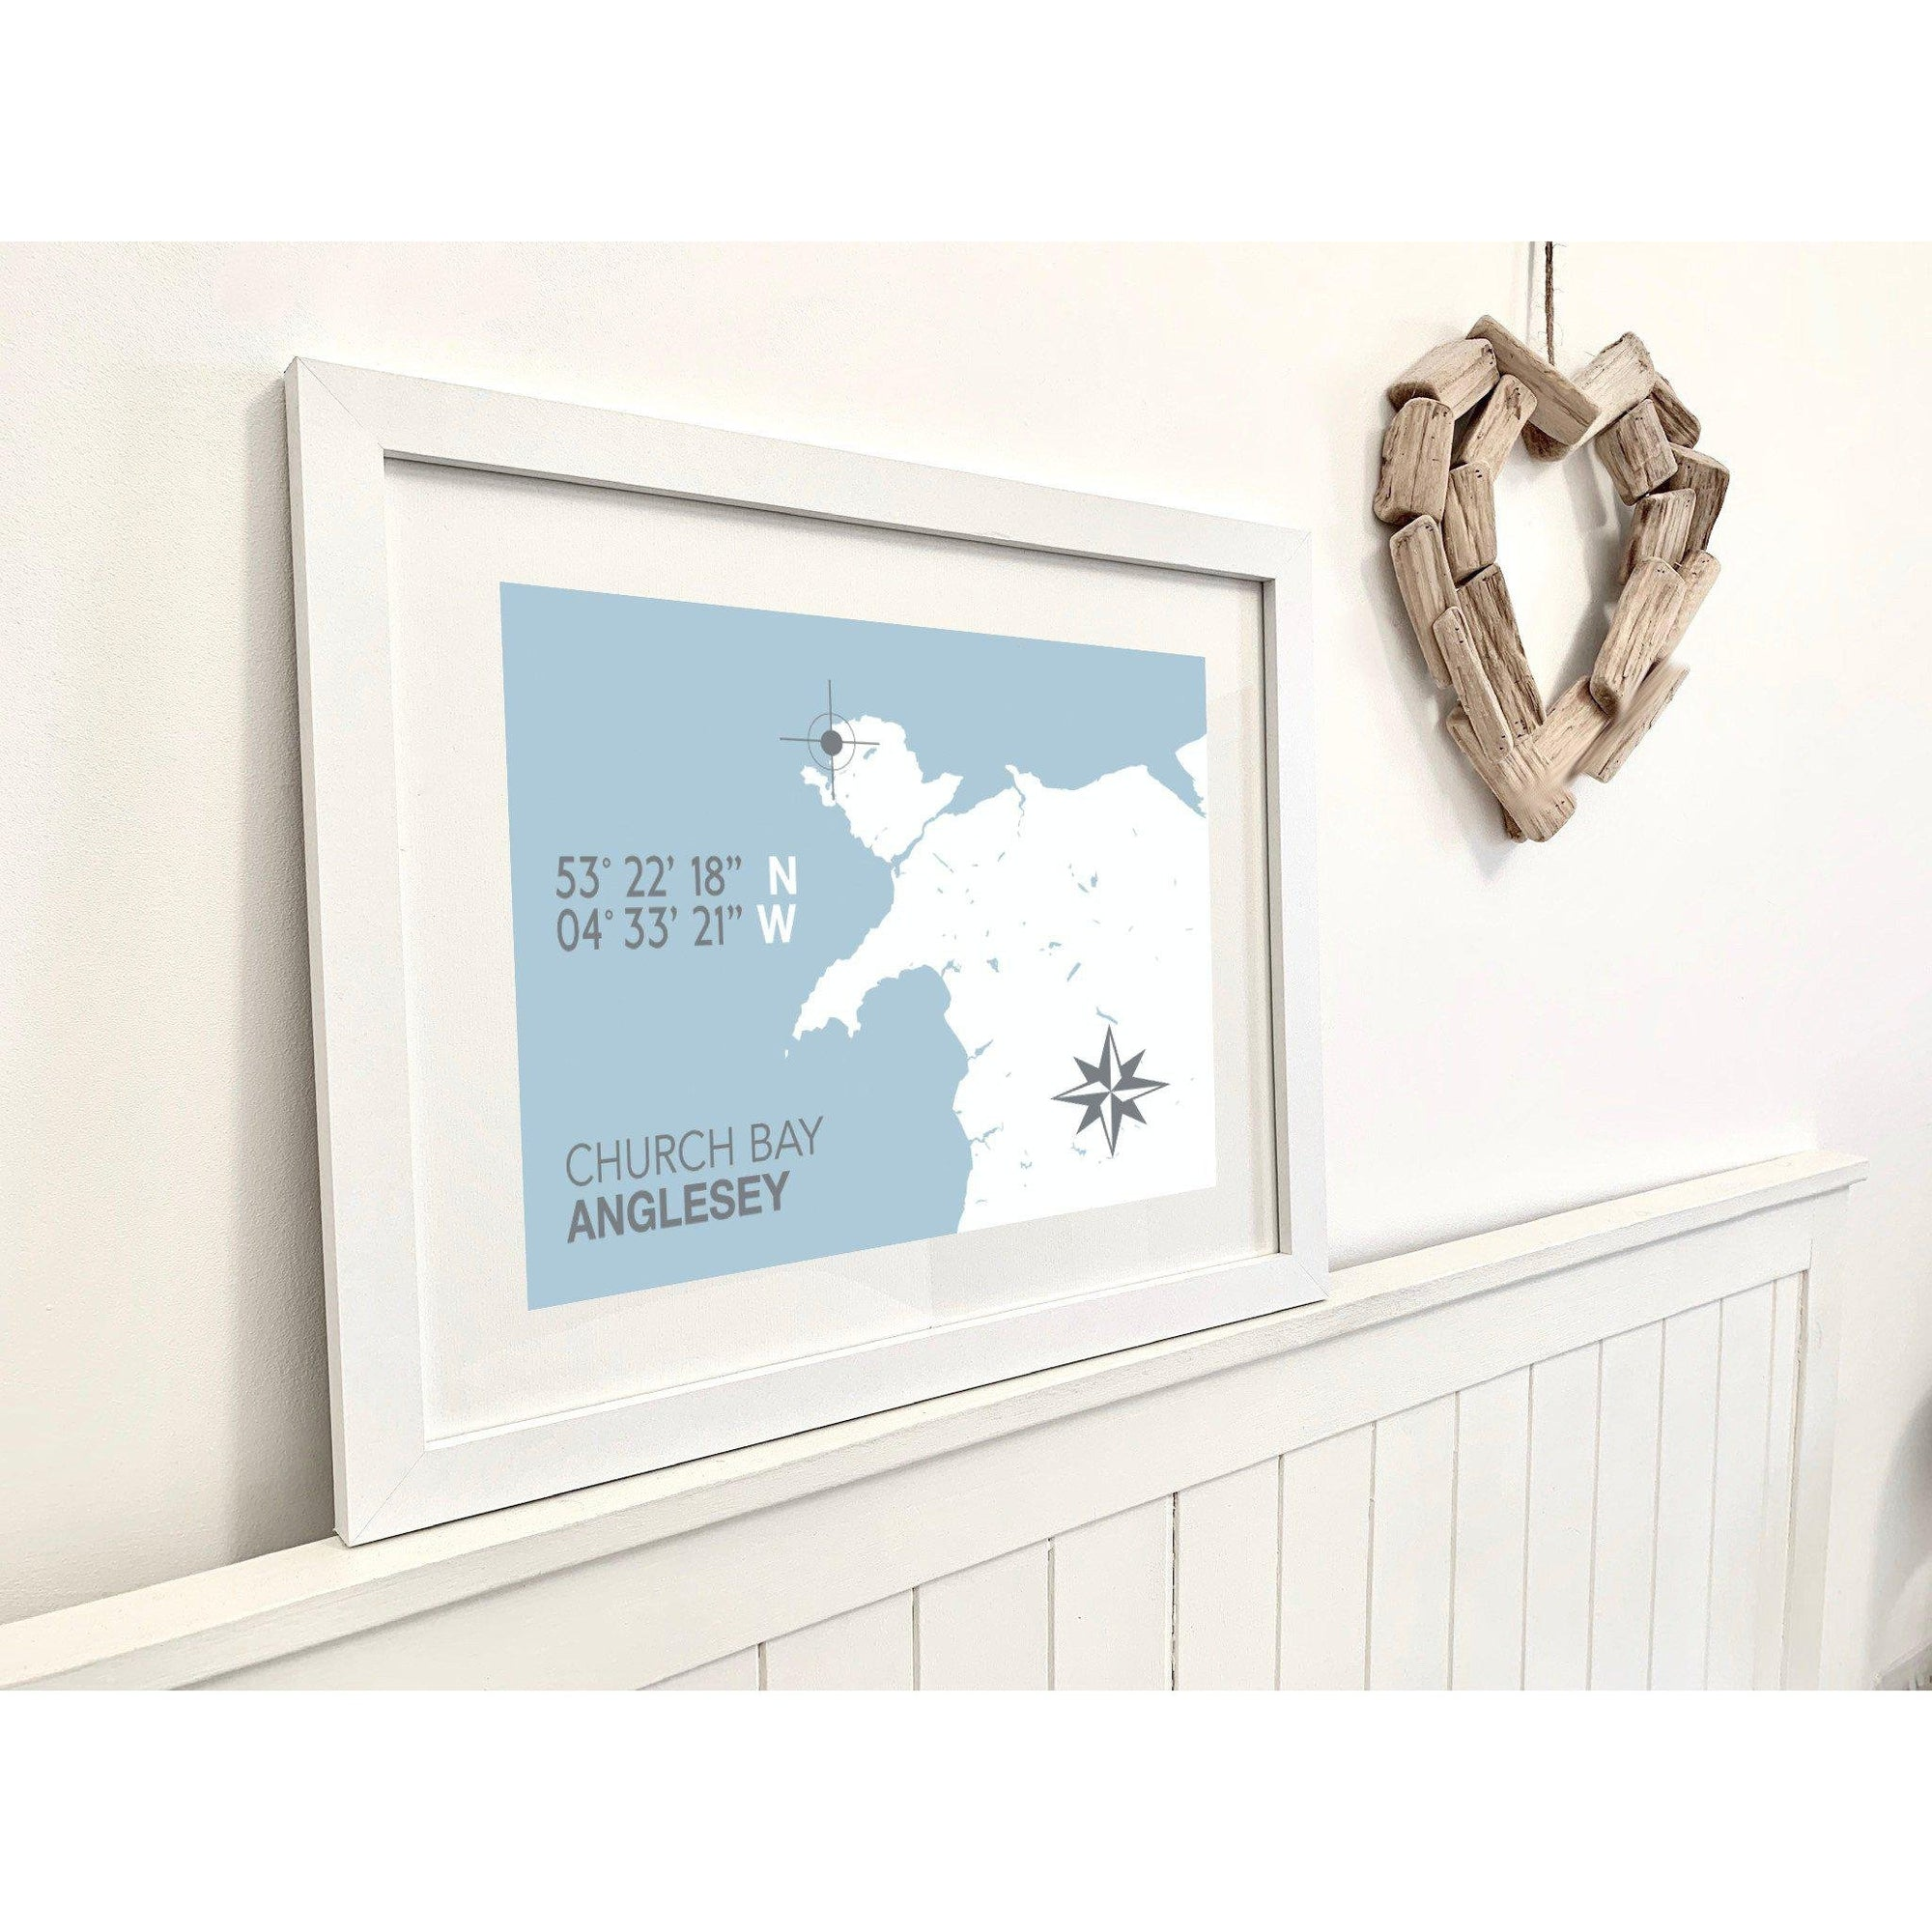 Church Bay, Anglesey Nautical Map Seaside Print - Coastal Wall Art /Poster-SeaKisses